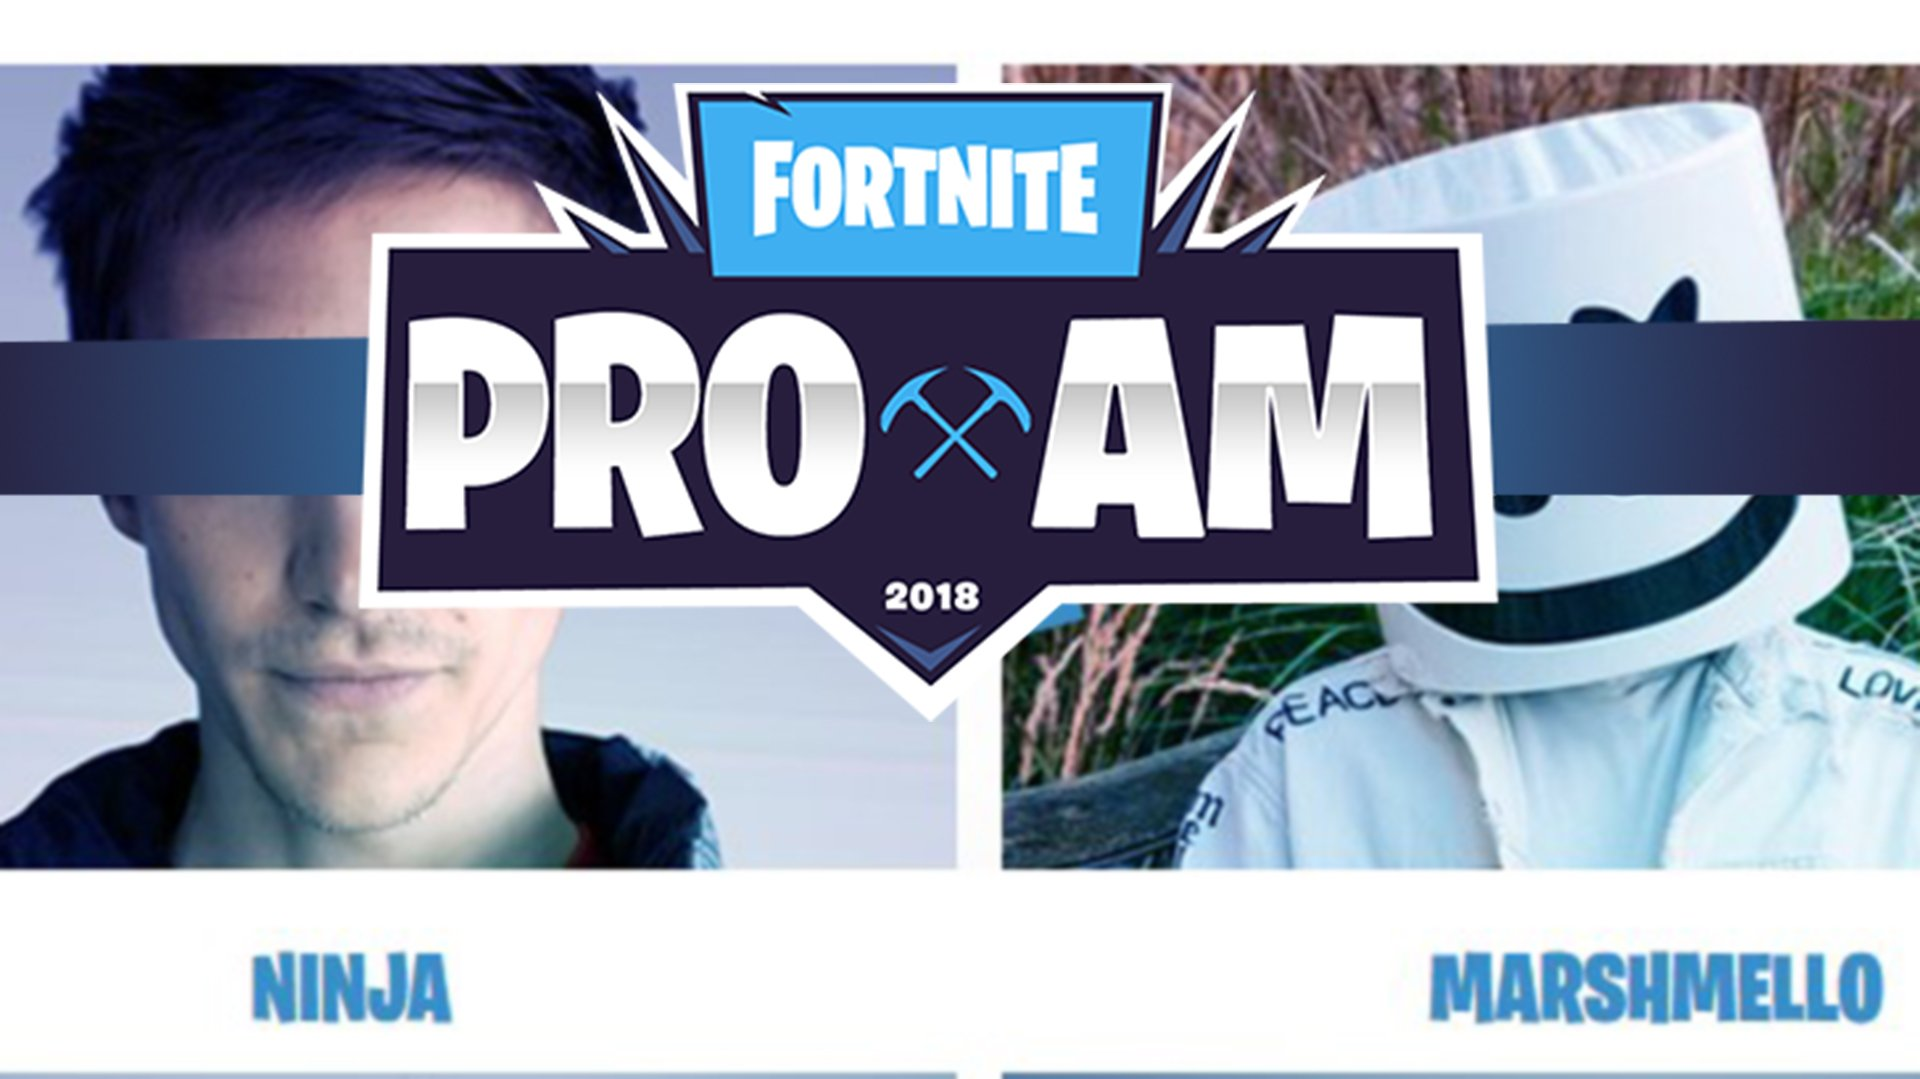 E3 this year will feature a 'Fortnite Pro-Am' celebrity tournament for 3 million towards charity screenshot